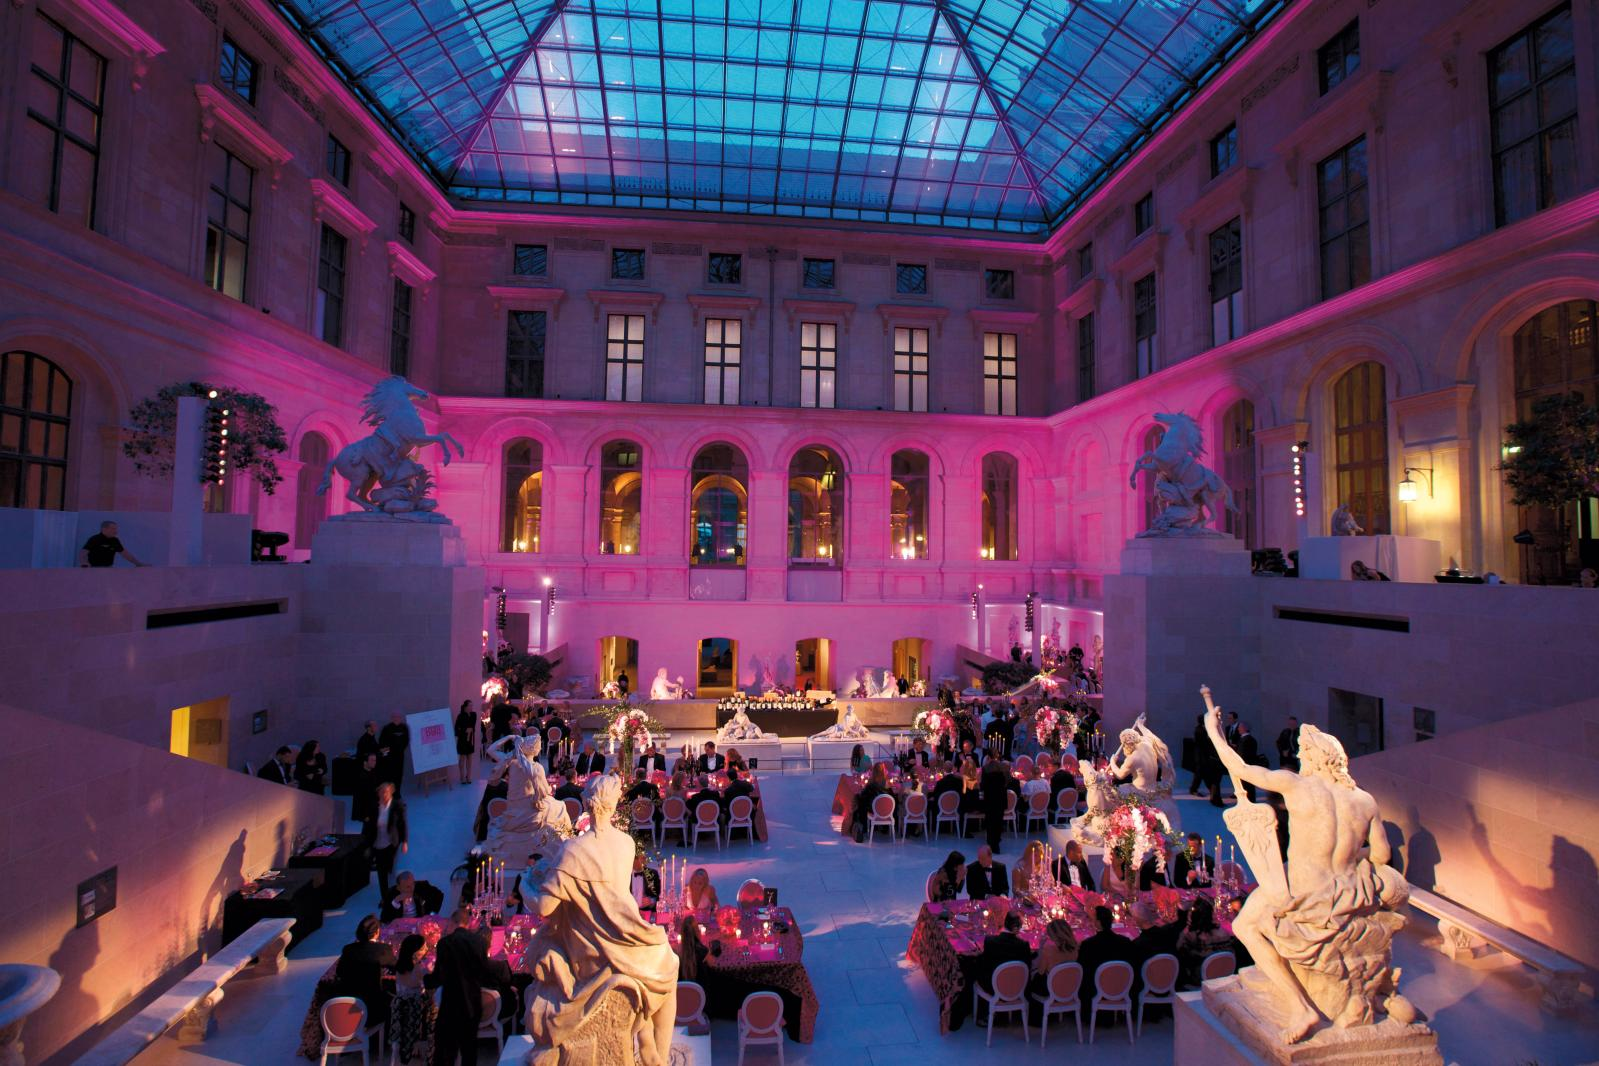 """Liaison"" gala evening at the Louvre in 2011, beneath the pyramid."